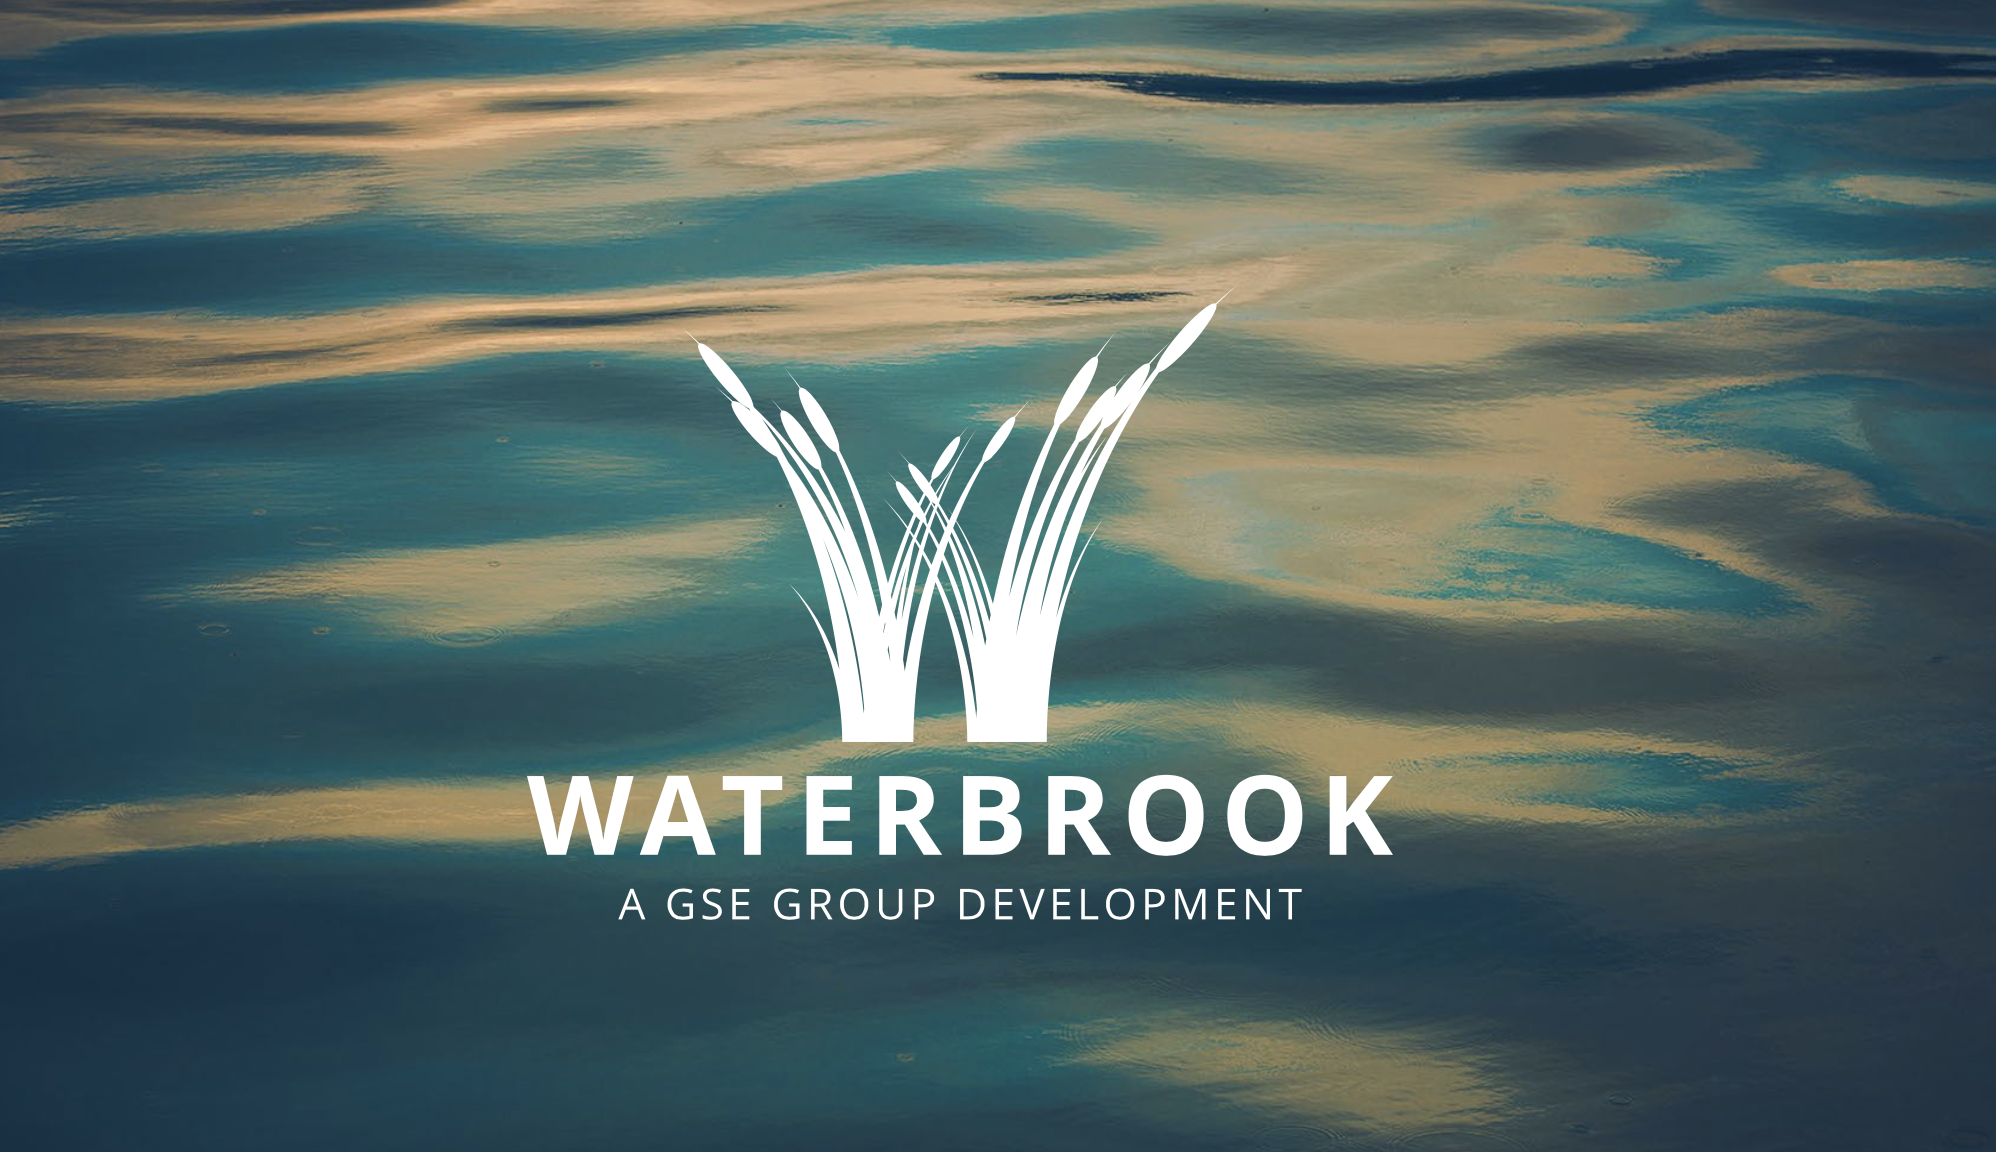 Waterbrook Park to bring significant growth to Ashford, Kent